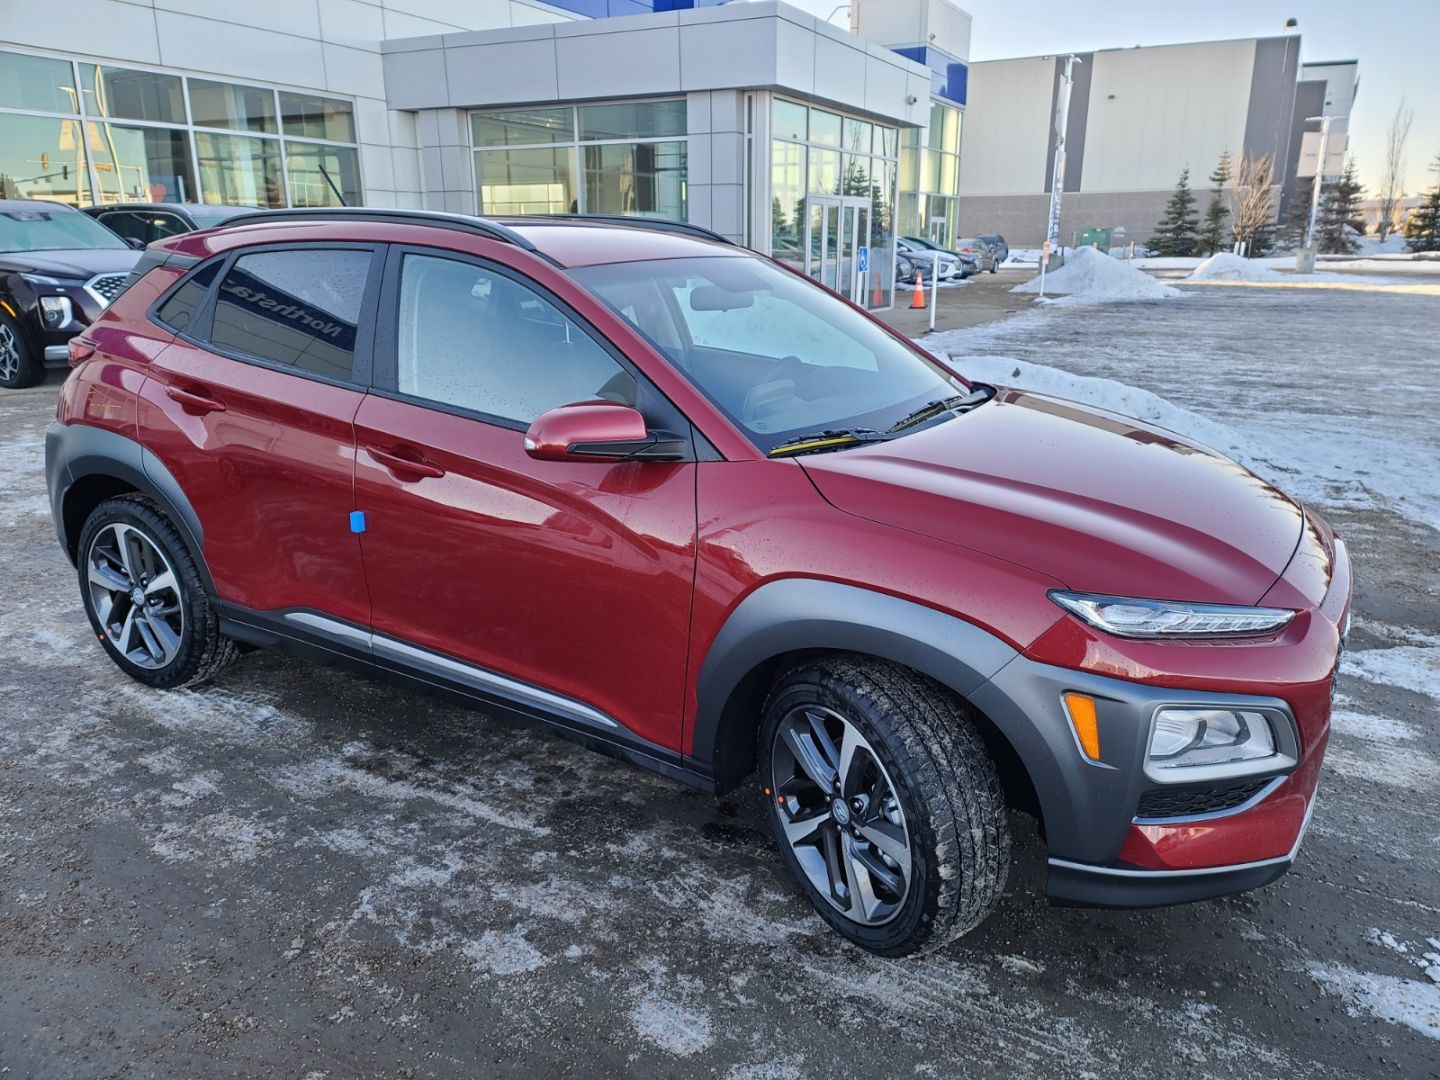 2021 Hyundai Kona Trend for sale in Edmonton, Alberta